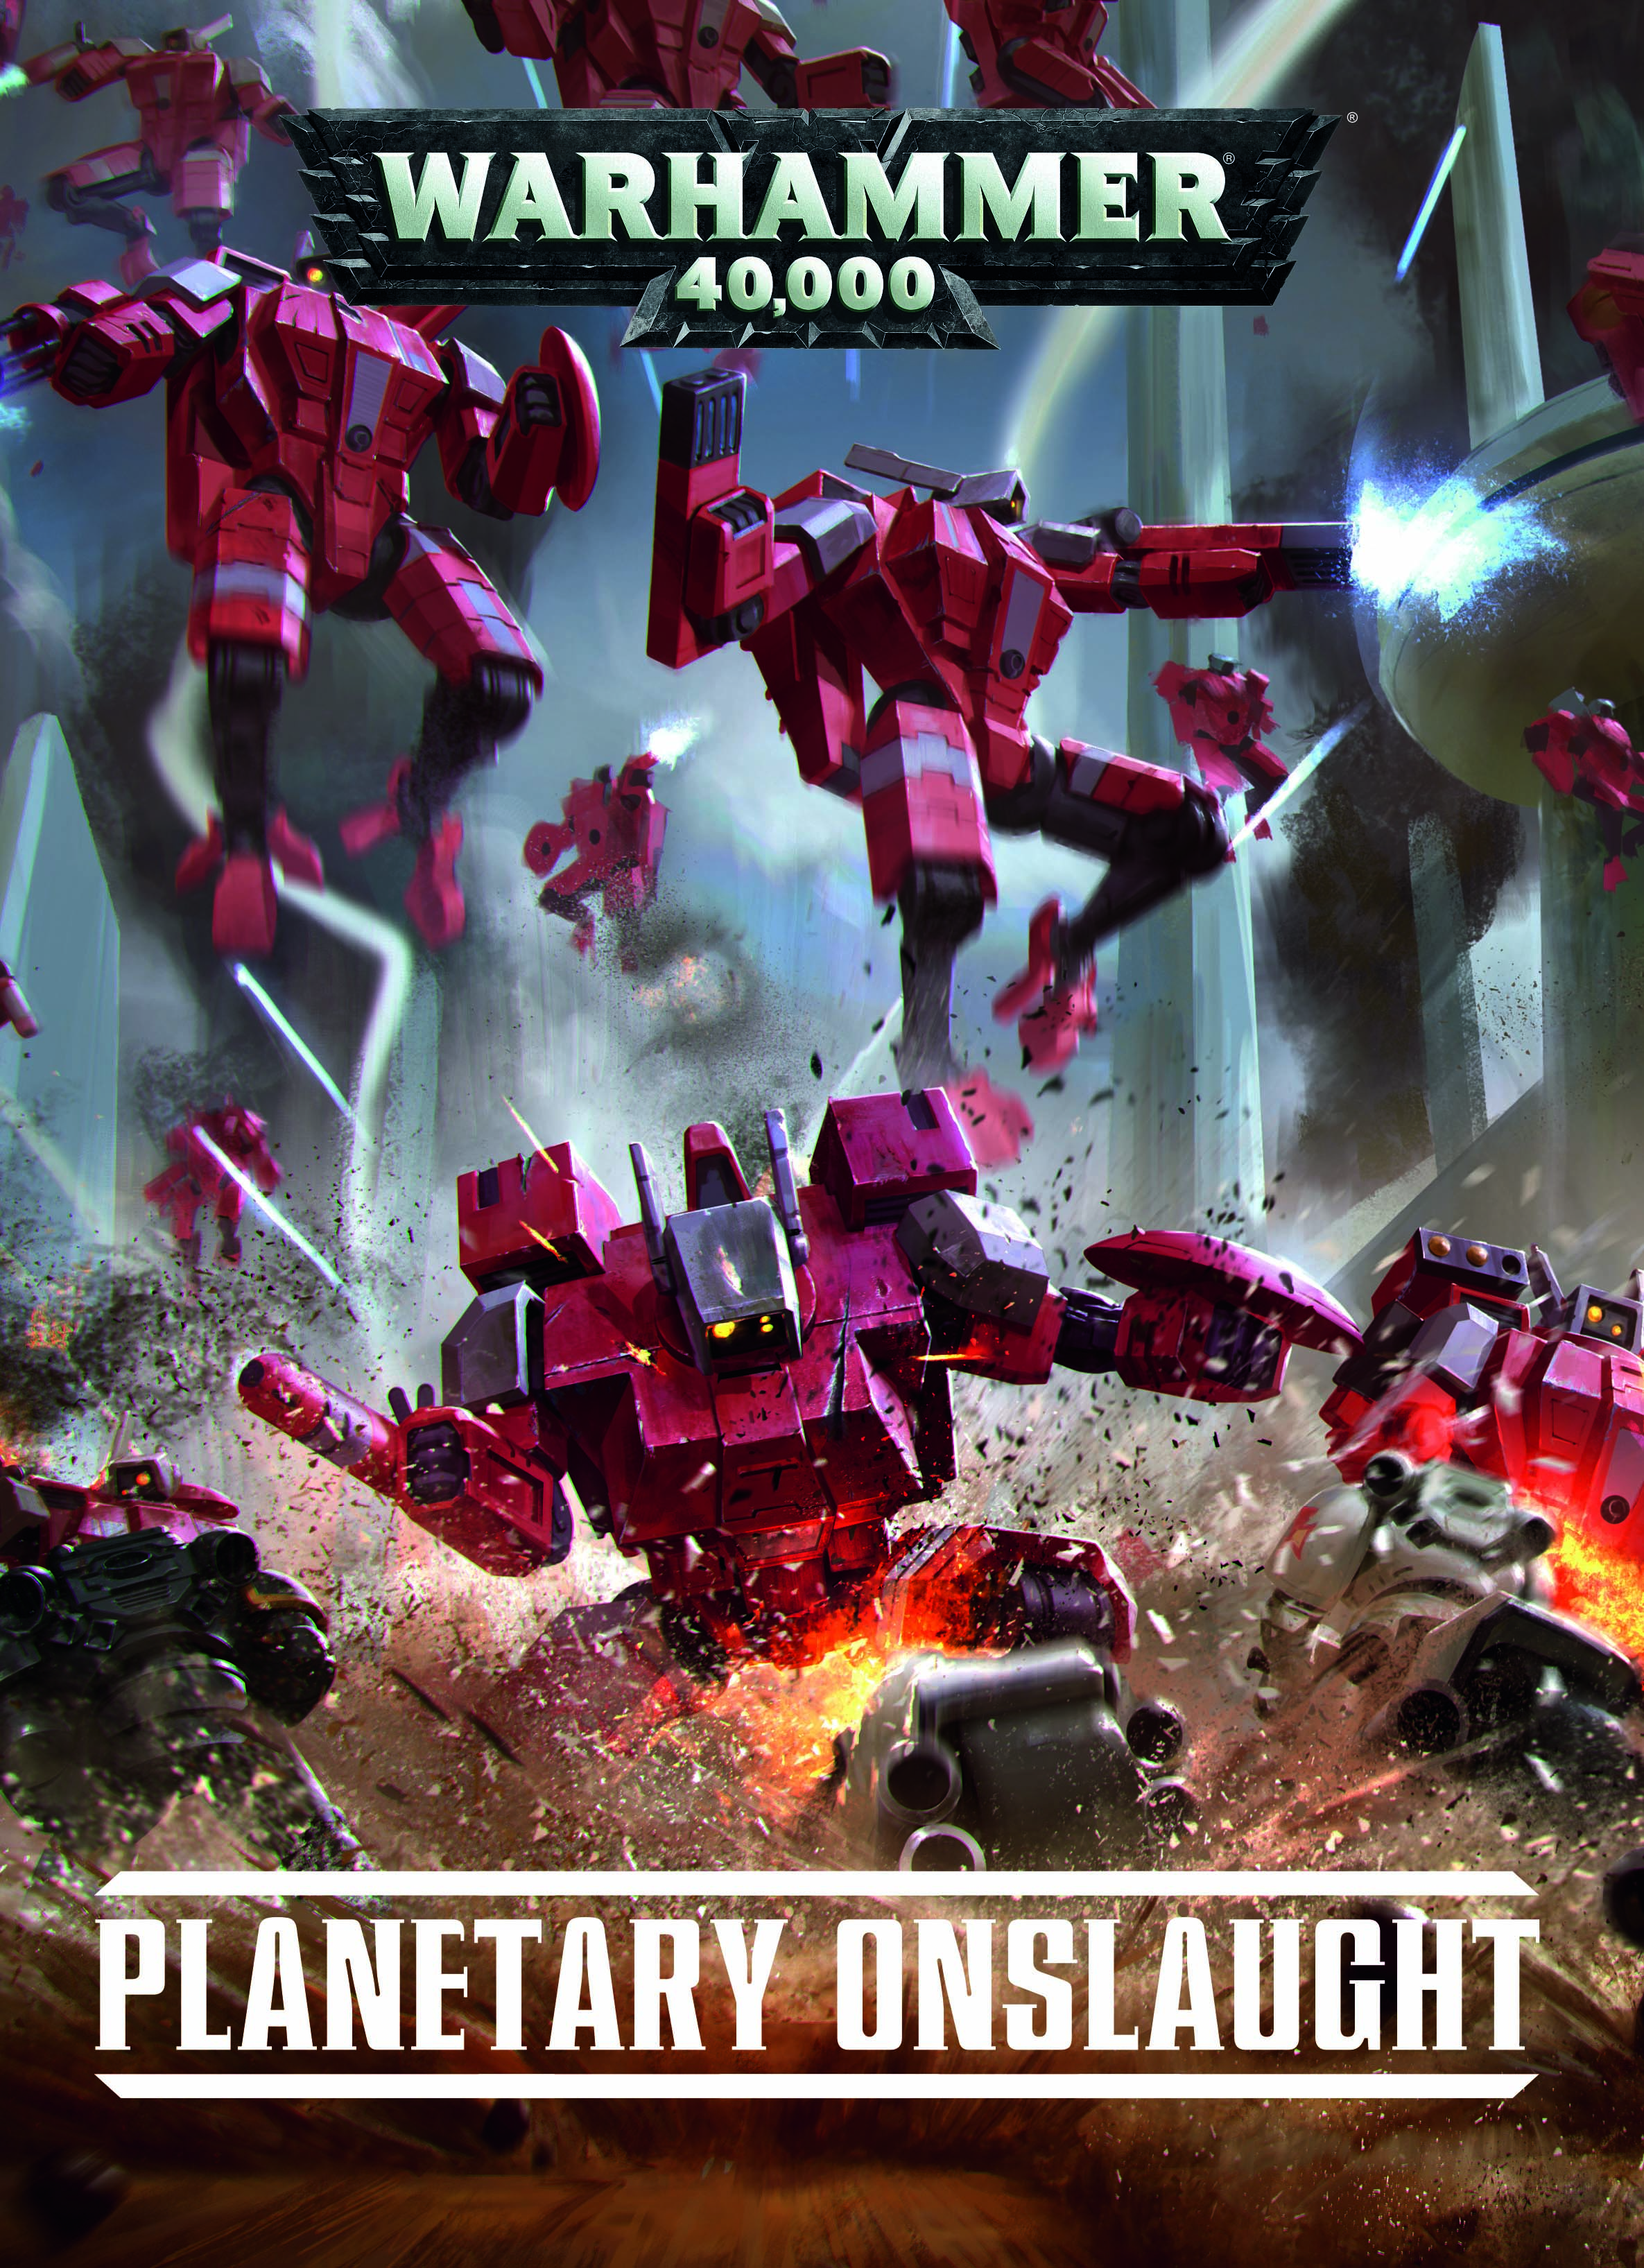 Warhammer 40,000: Planetary Onslaught (HB) (7th Edition) [SALE]